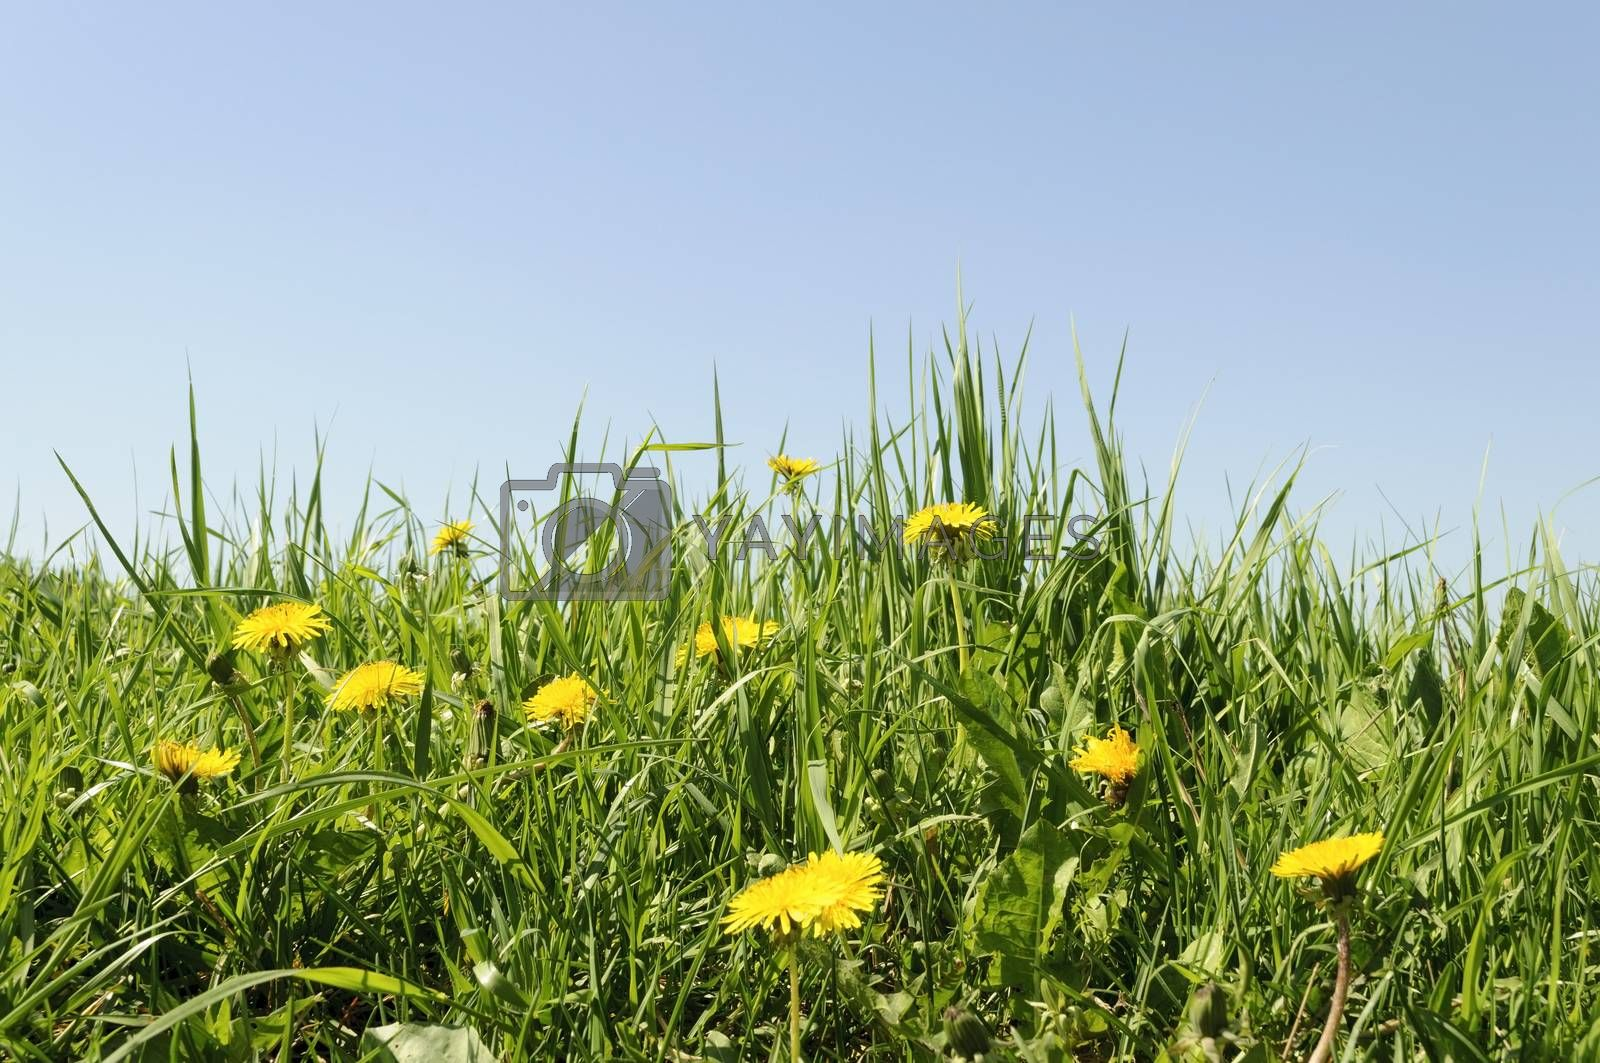 Flowering yellow dandelions in green grass on blue sky background